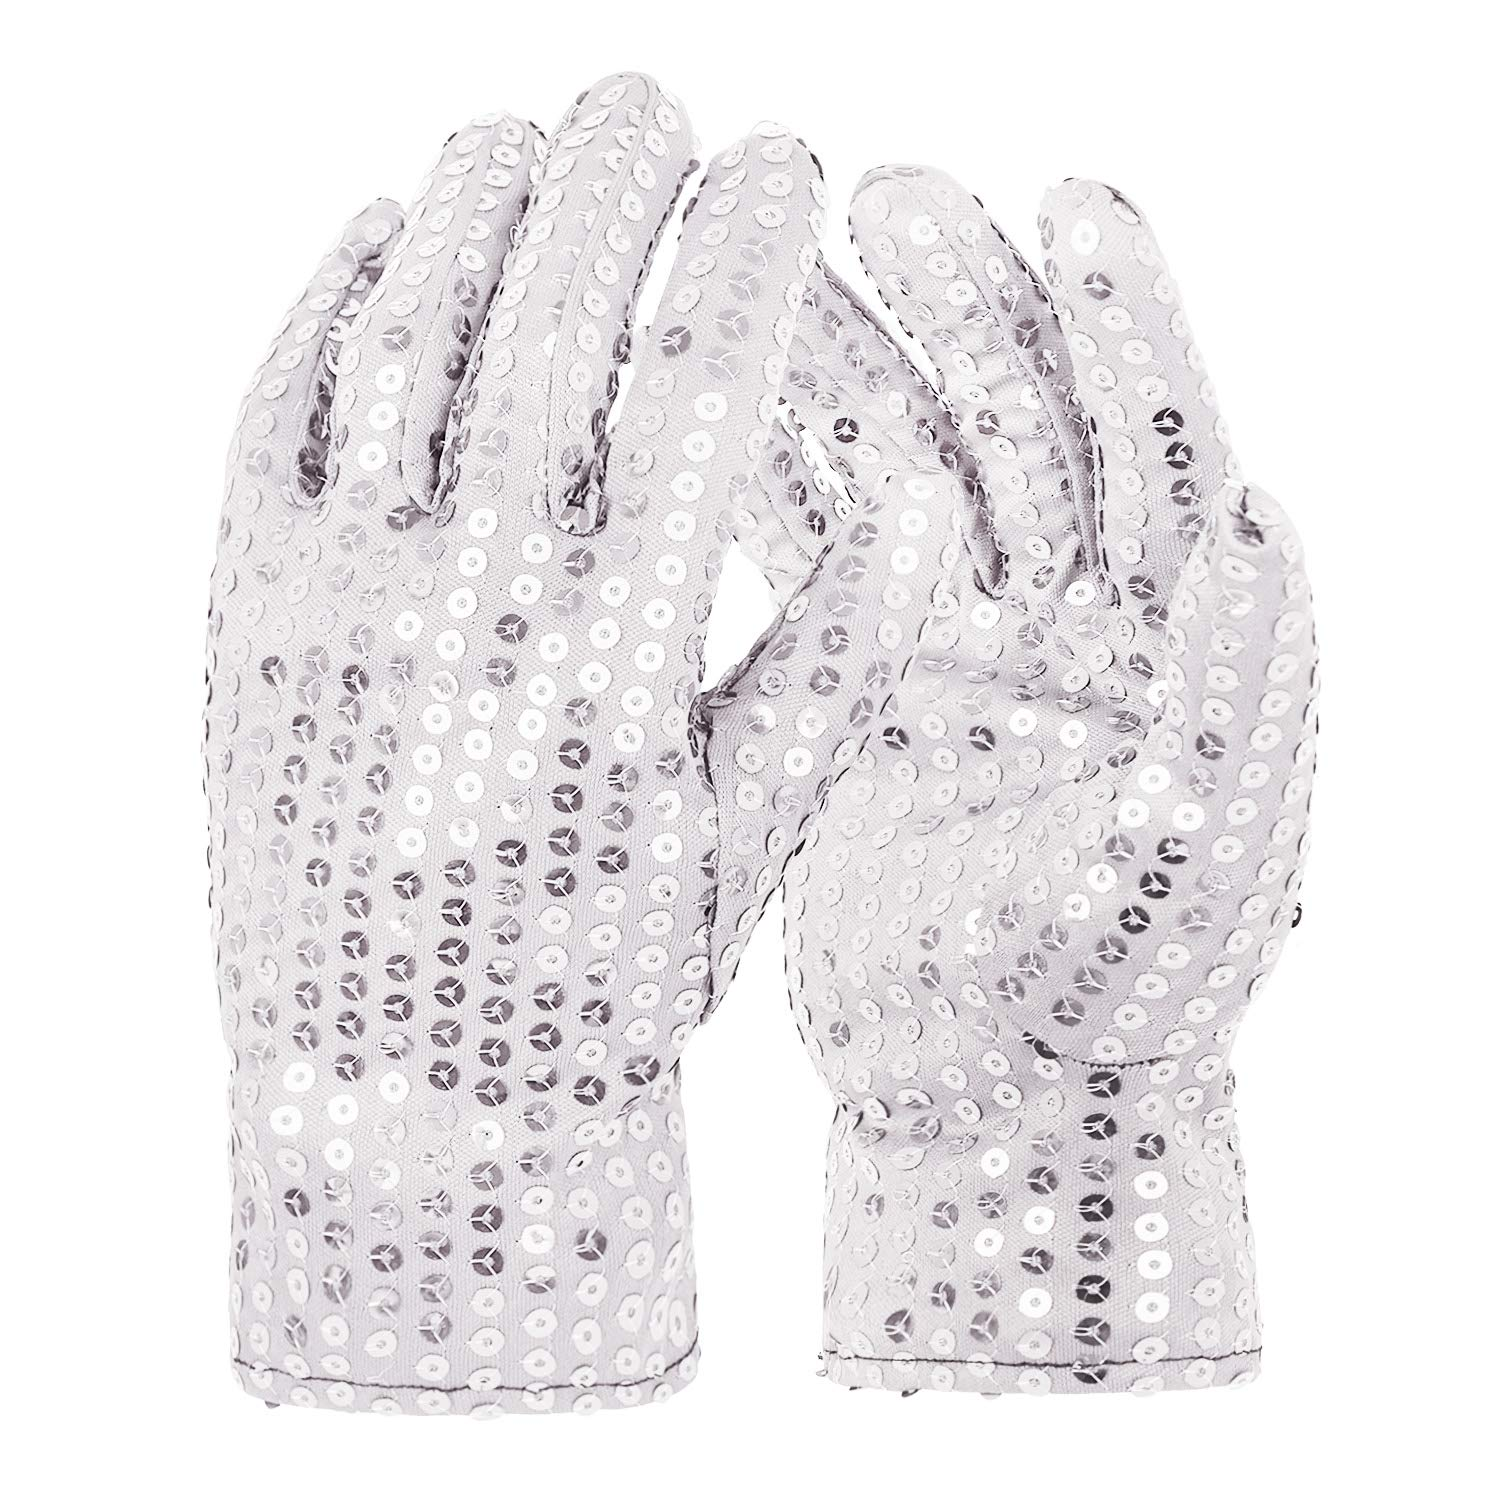 Michael Jackson Costume Gloves Dress up Dance Sequin Gloves Cosplay Party Dance Halloween, Adult Size (Silver)